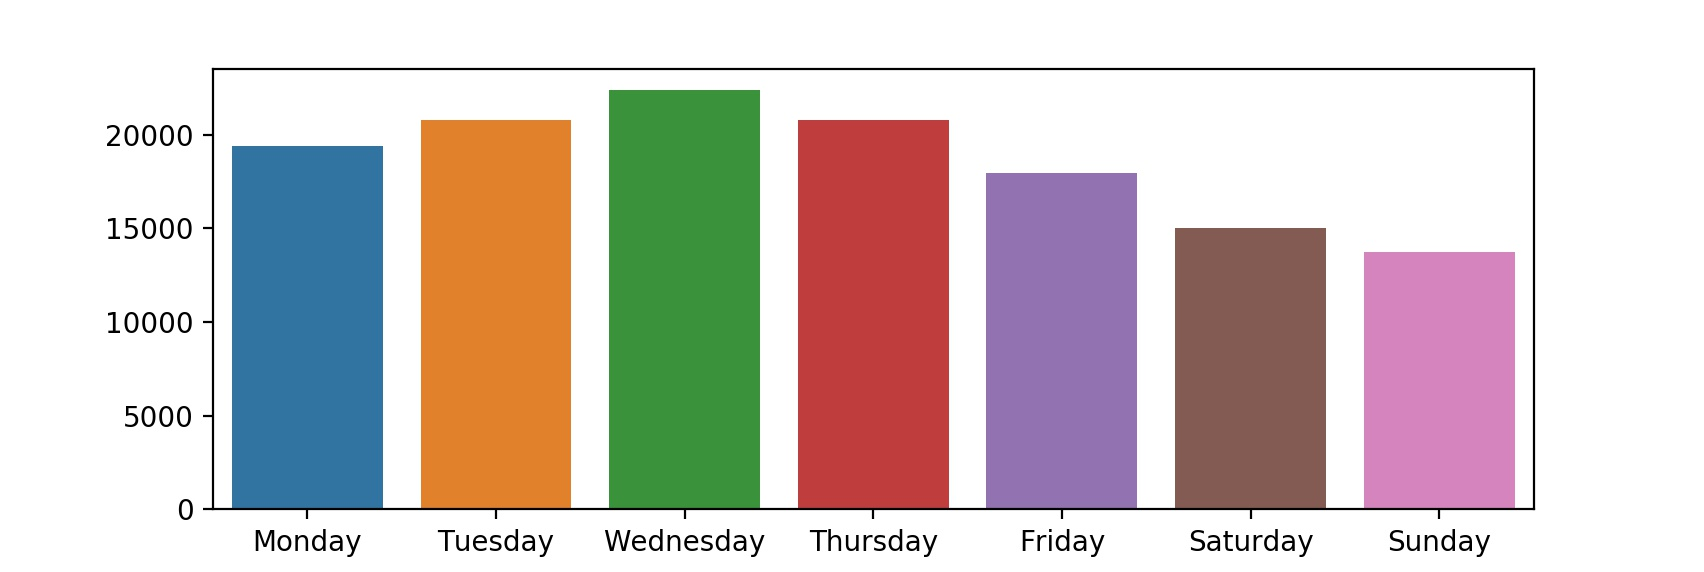 manhattan-weekday-graph